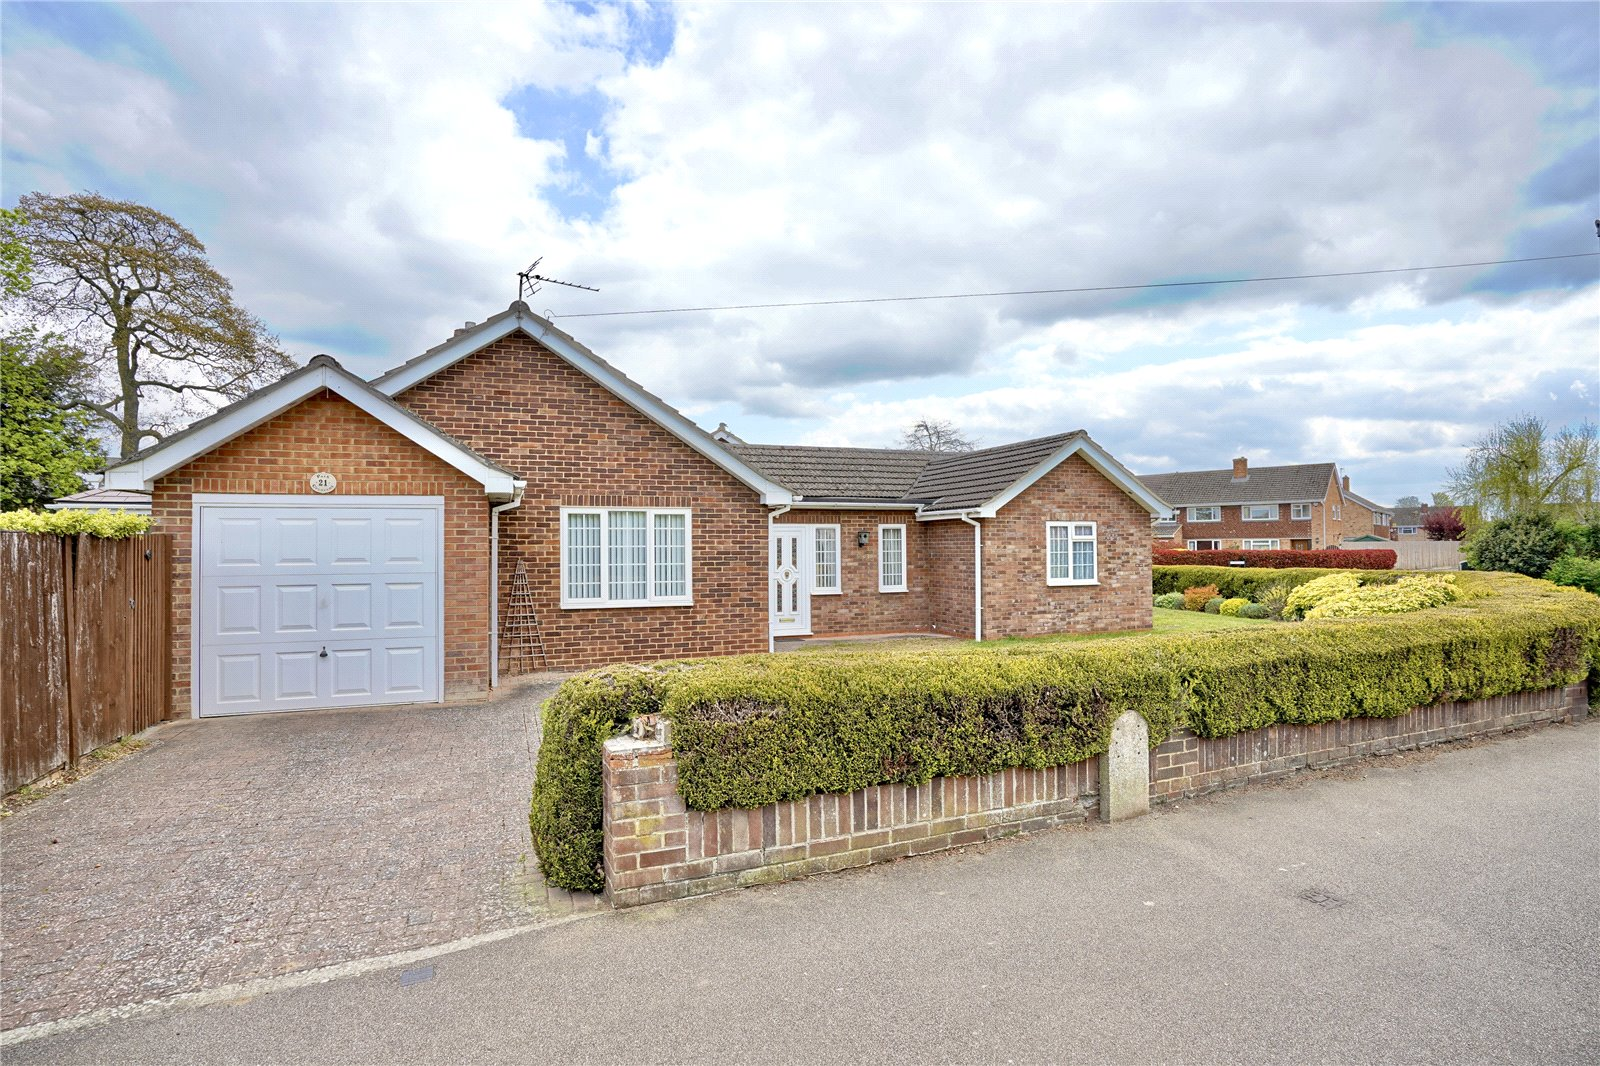 2 bed  for sale in Park Crescent, Little Paxton, PE19